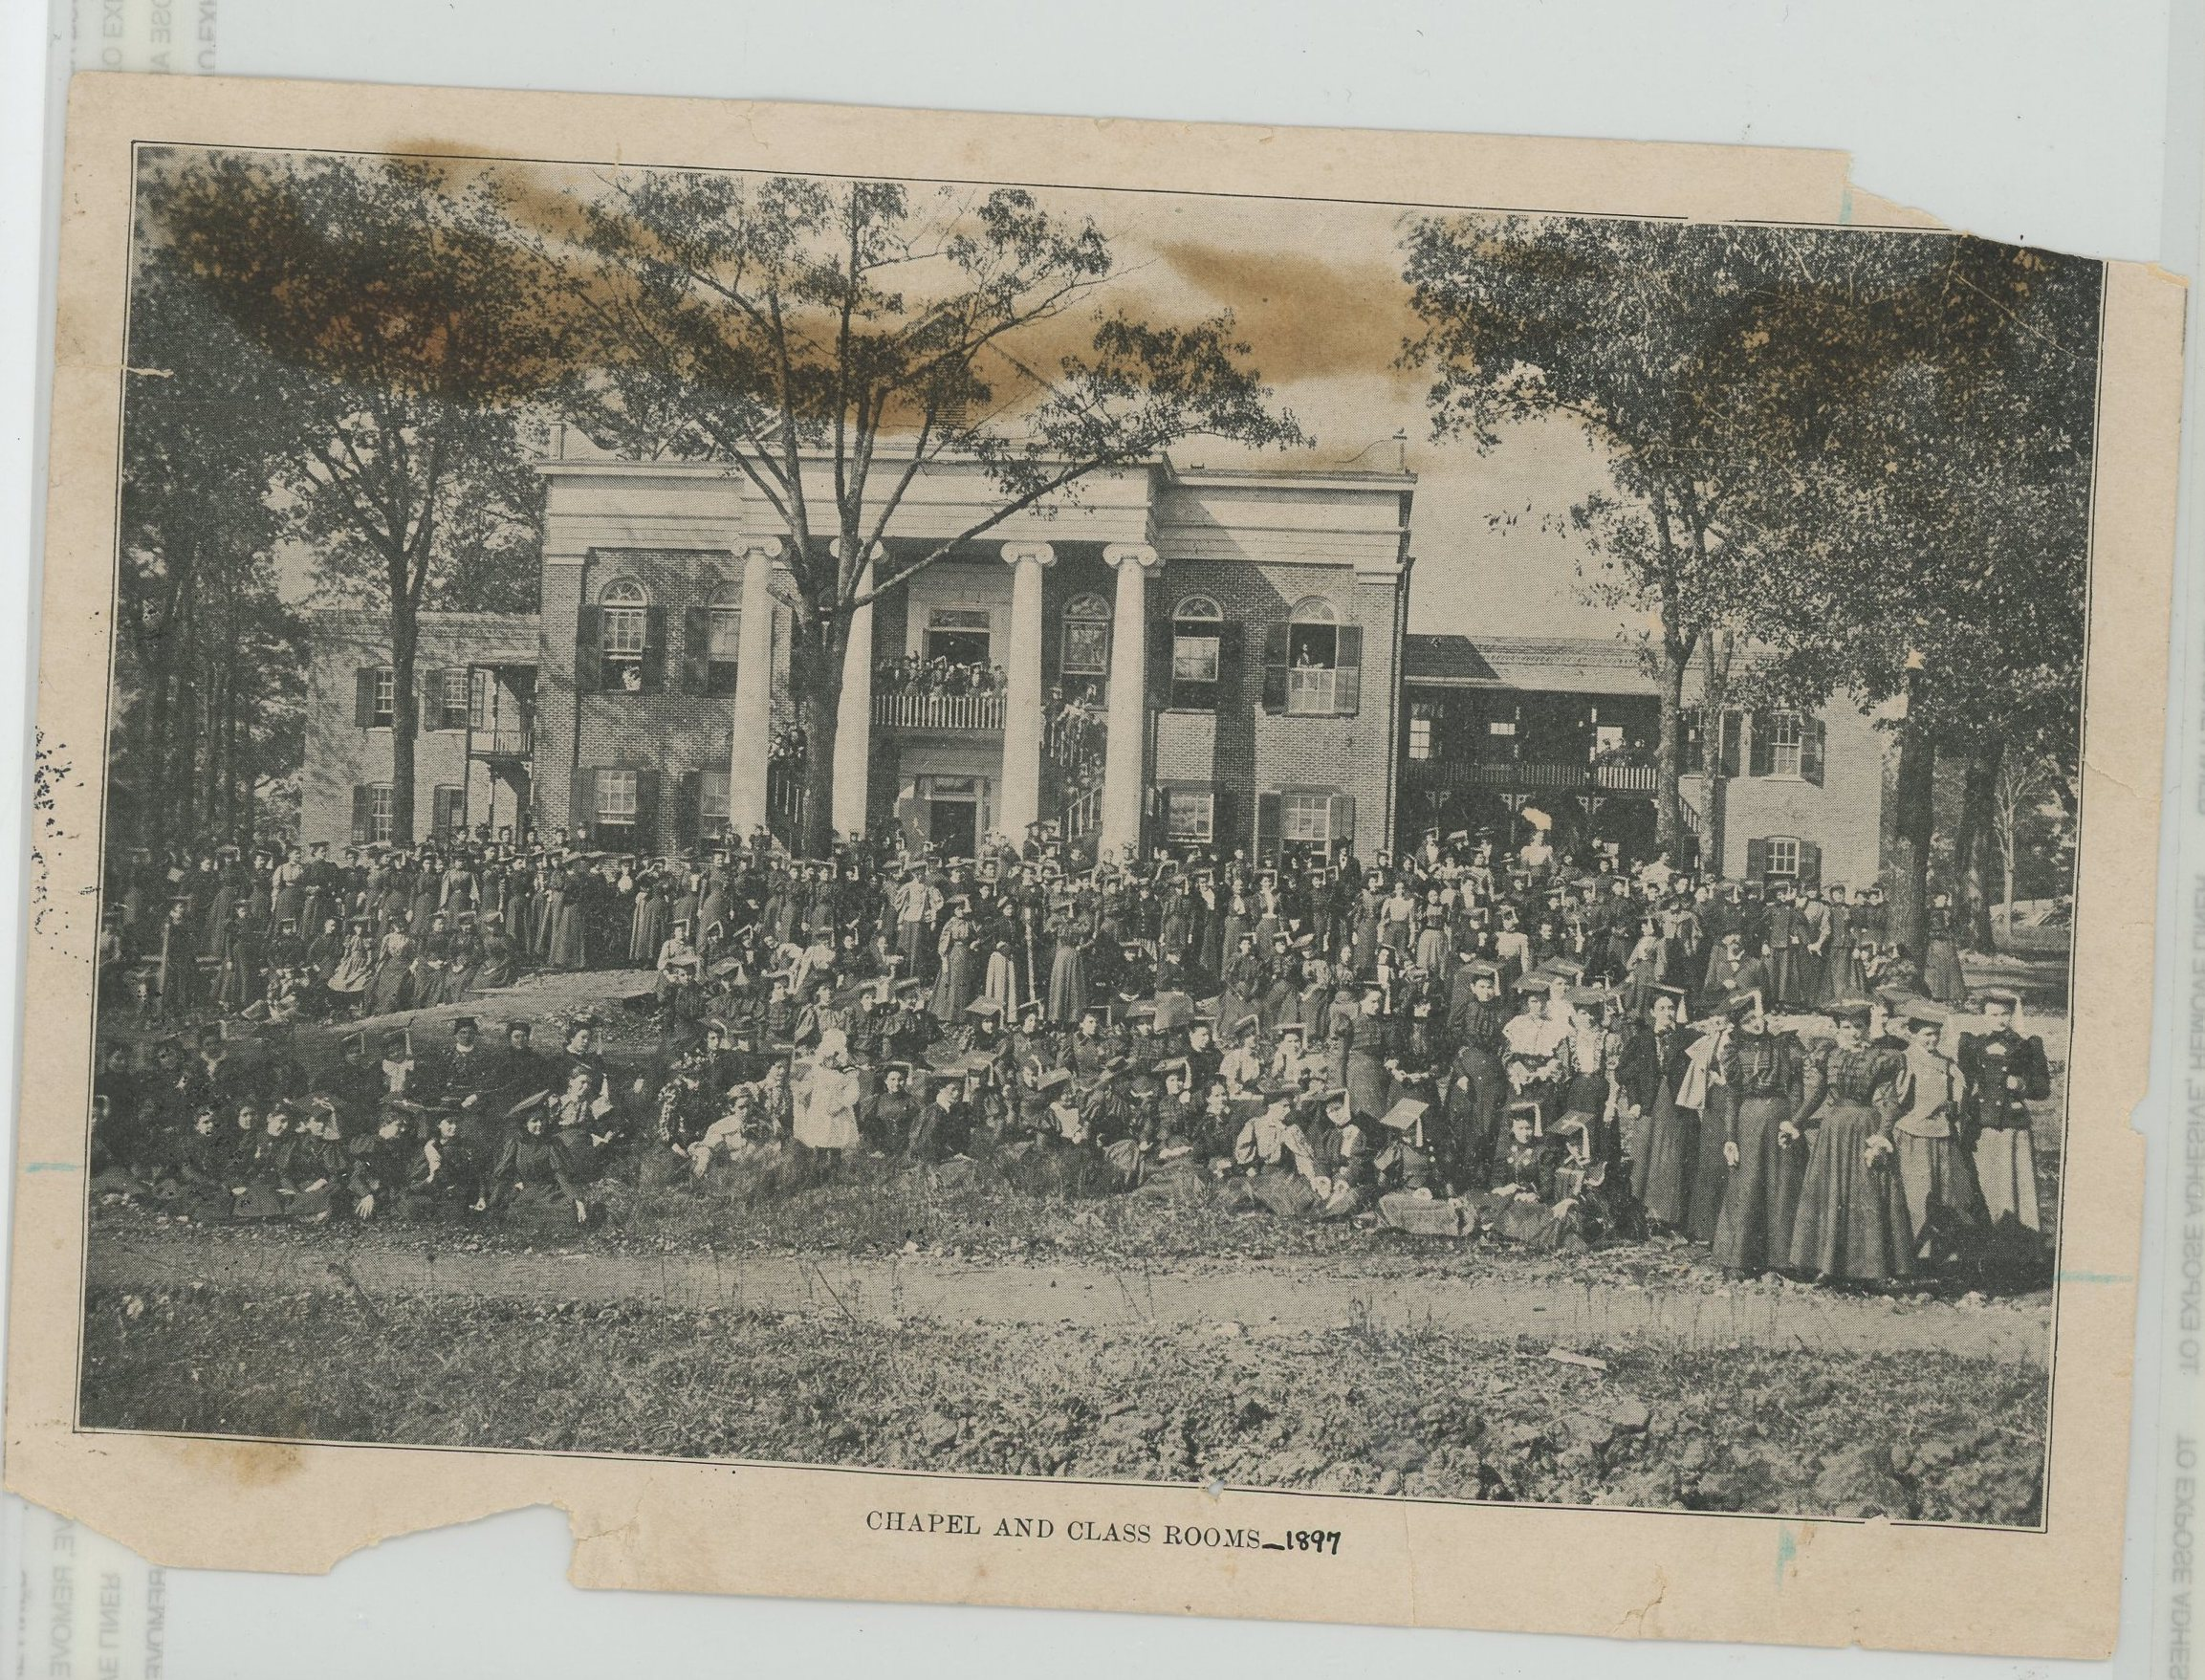 Students gathered in front of Reynolds Hall in 1897, not long after the school, then known as Alabama Girls' Industrial School, first opened.